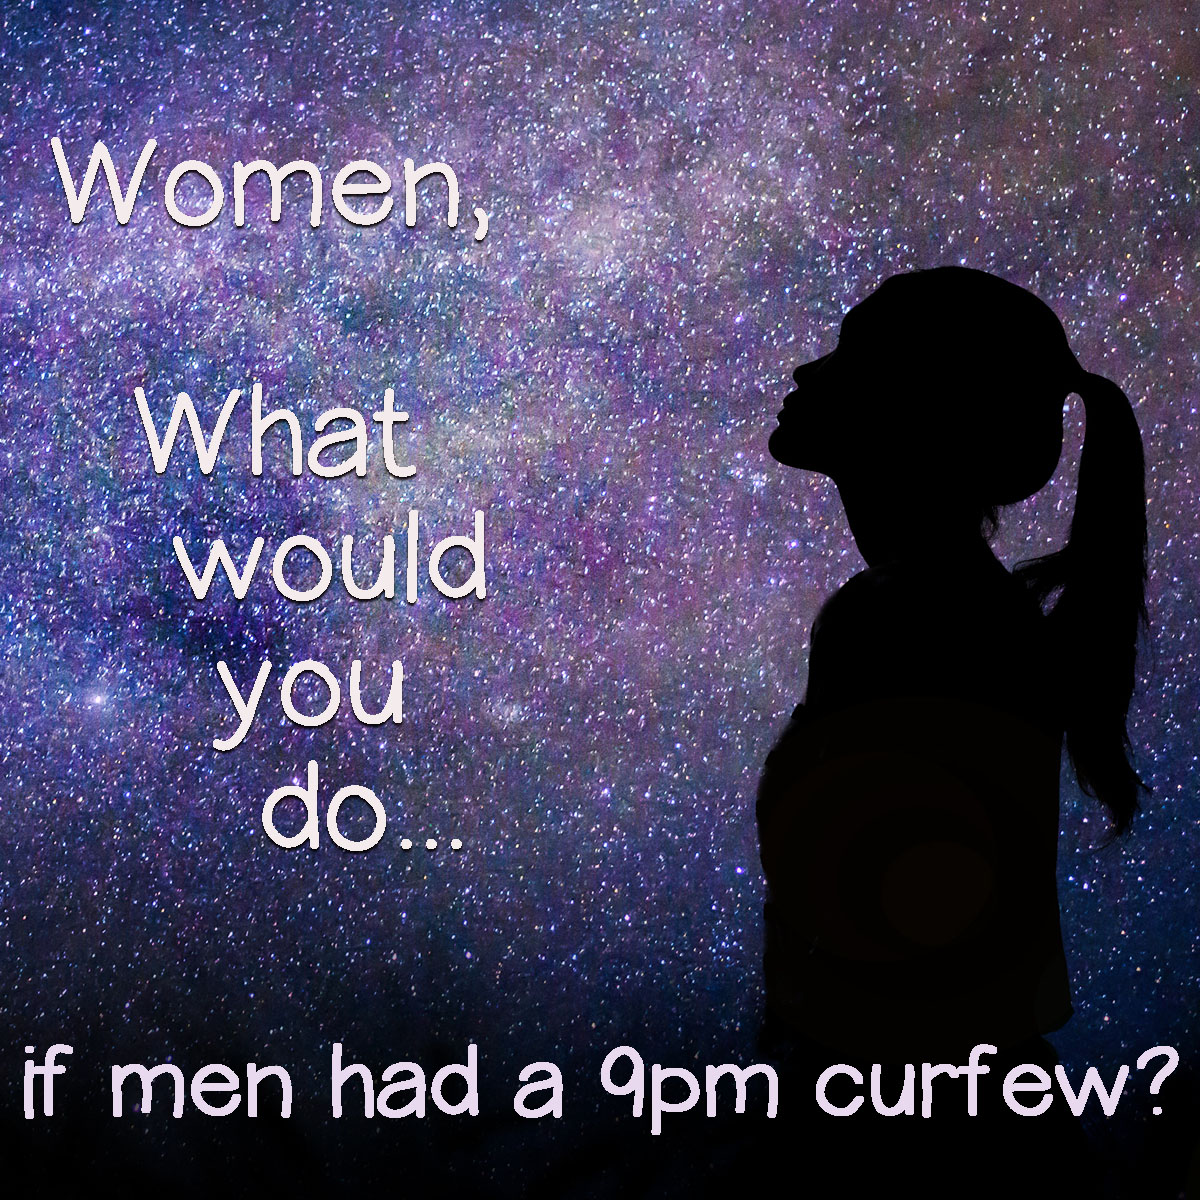 If men had a curfew